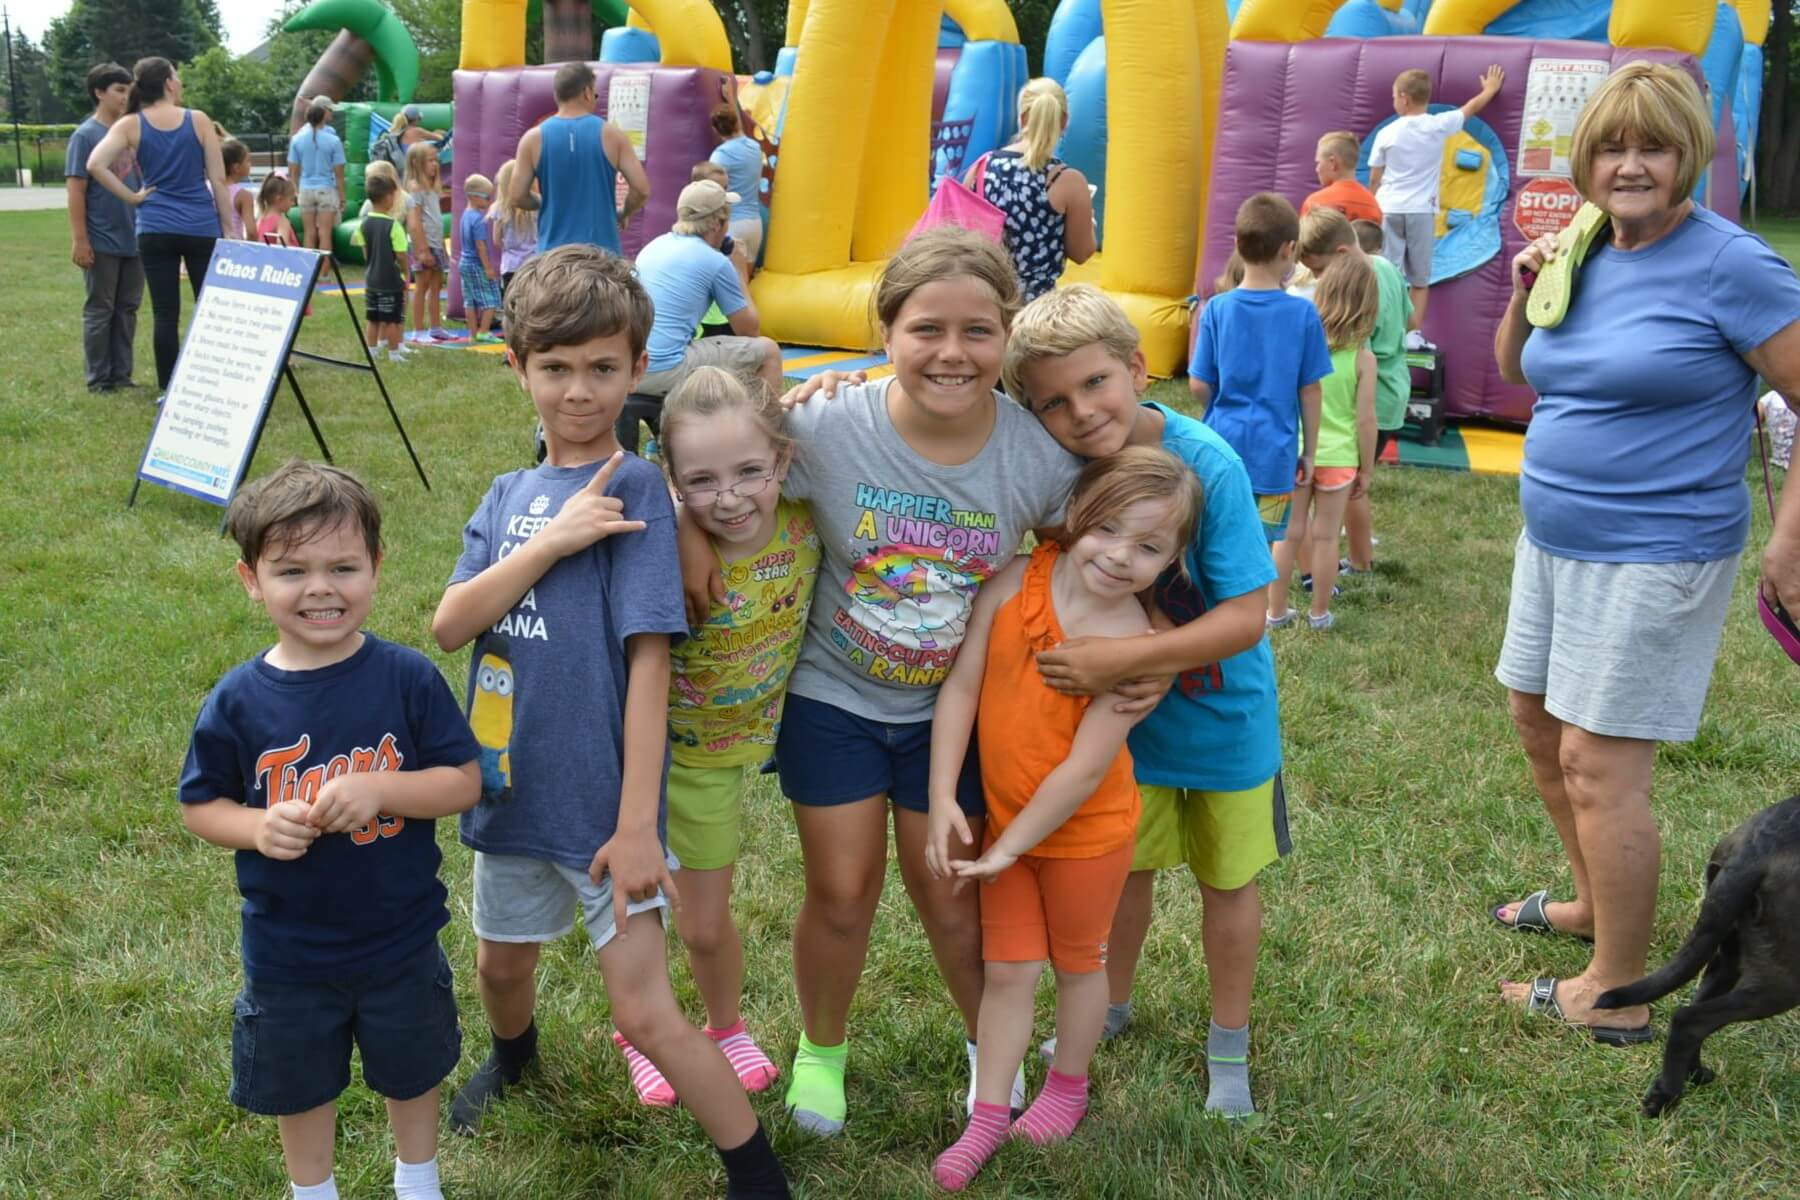 https://www.slrec.net/special-events/#bounce-days-at-mchattie-park